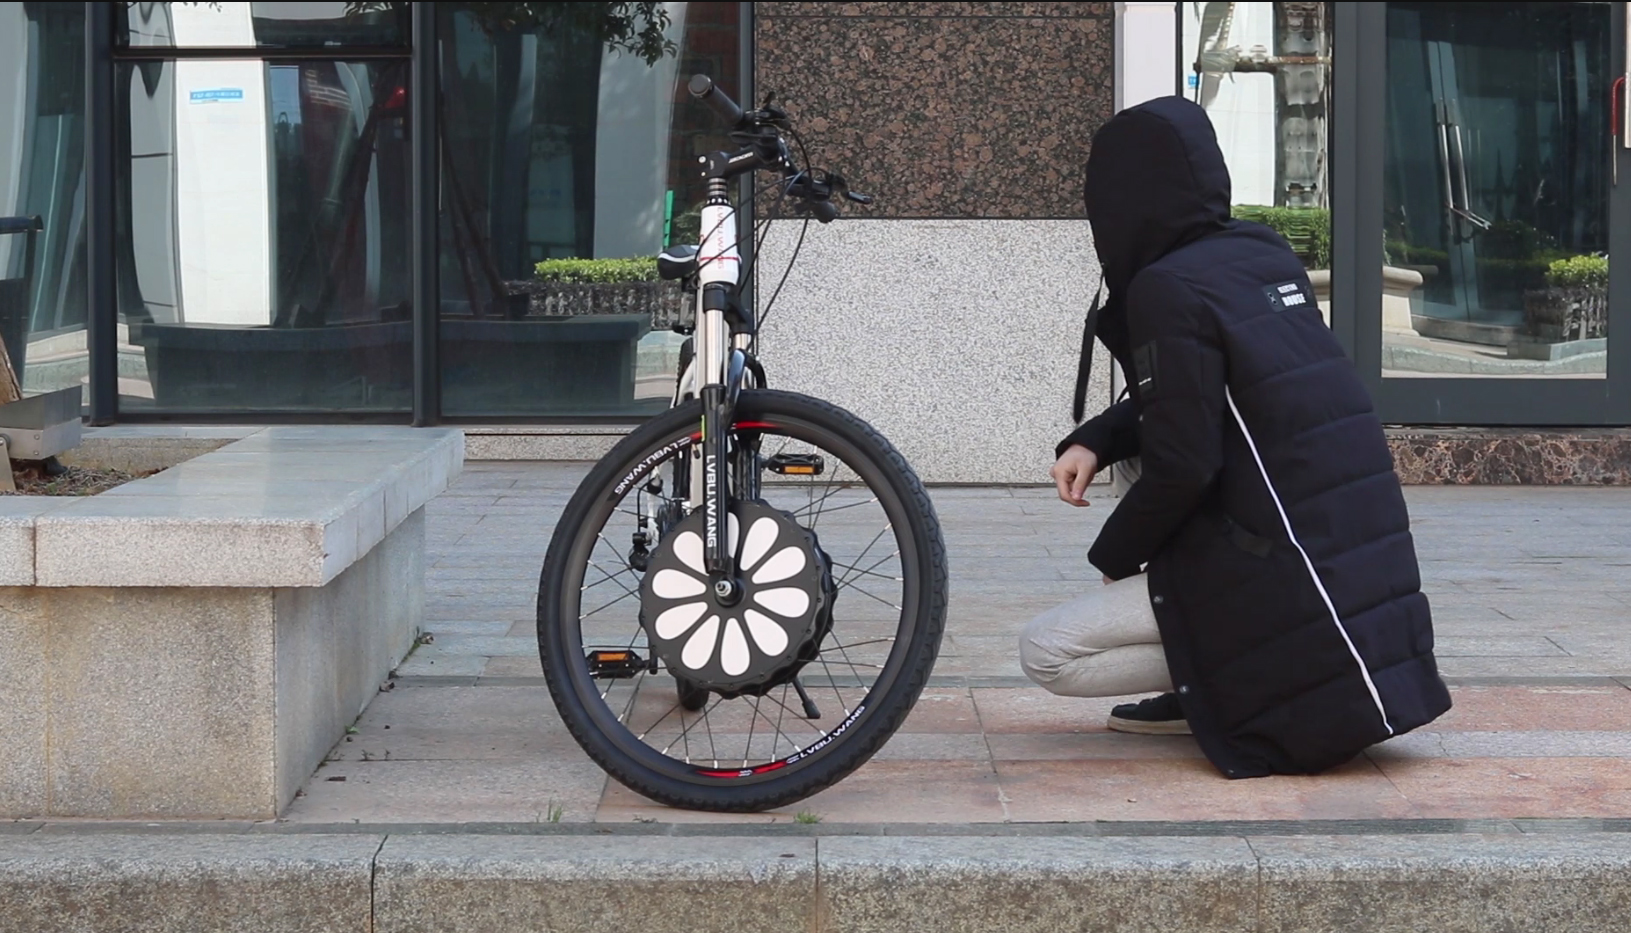 Bicycle anti-theft function video